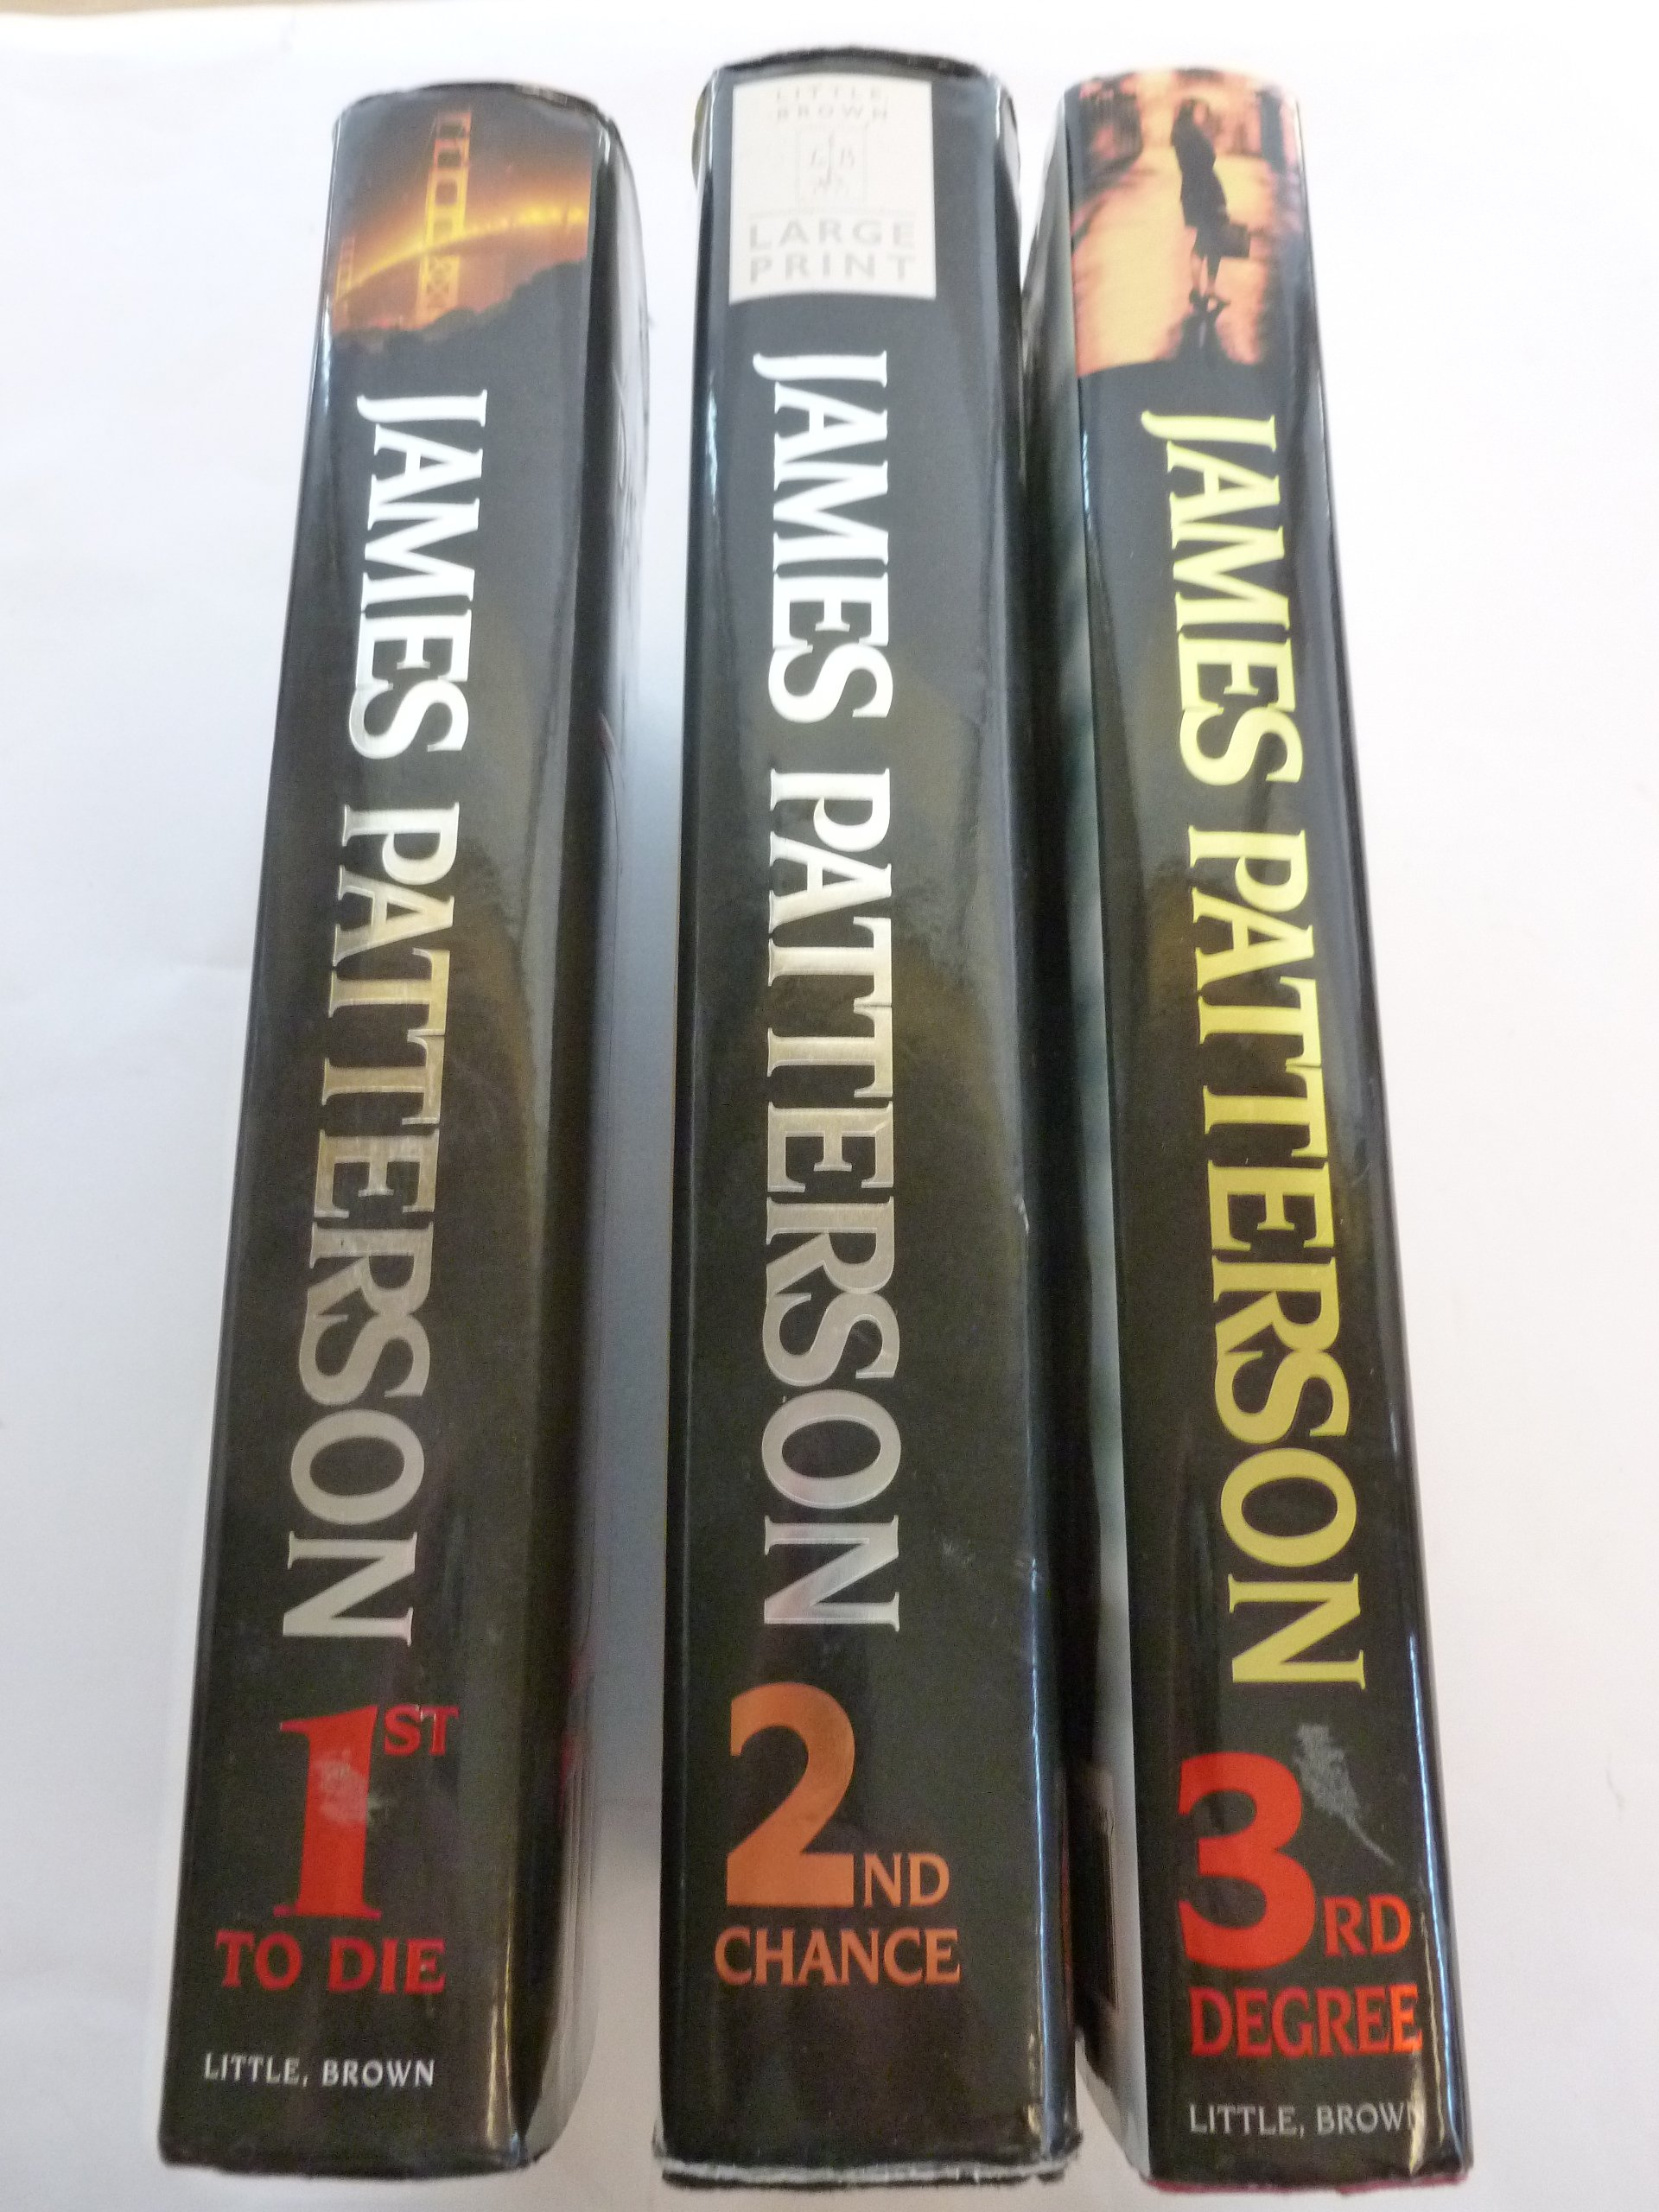 James Patterson set Womans Murder